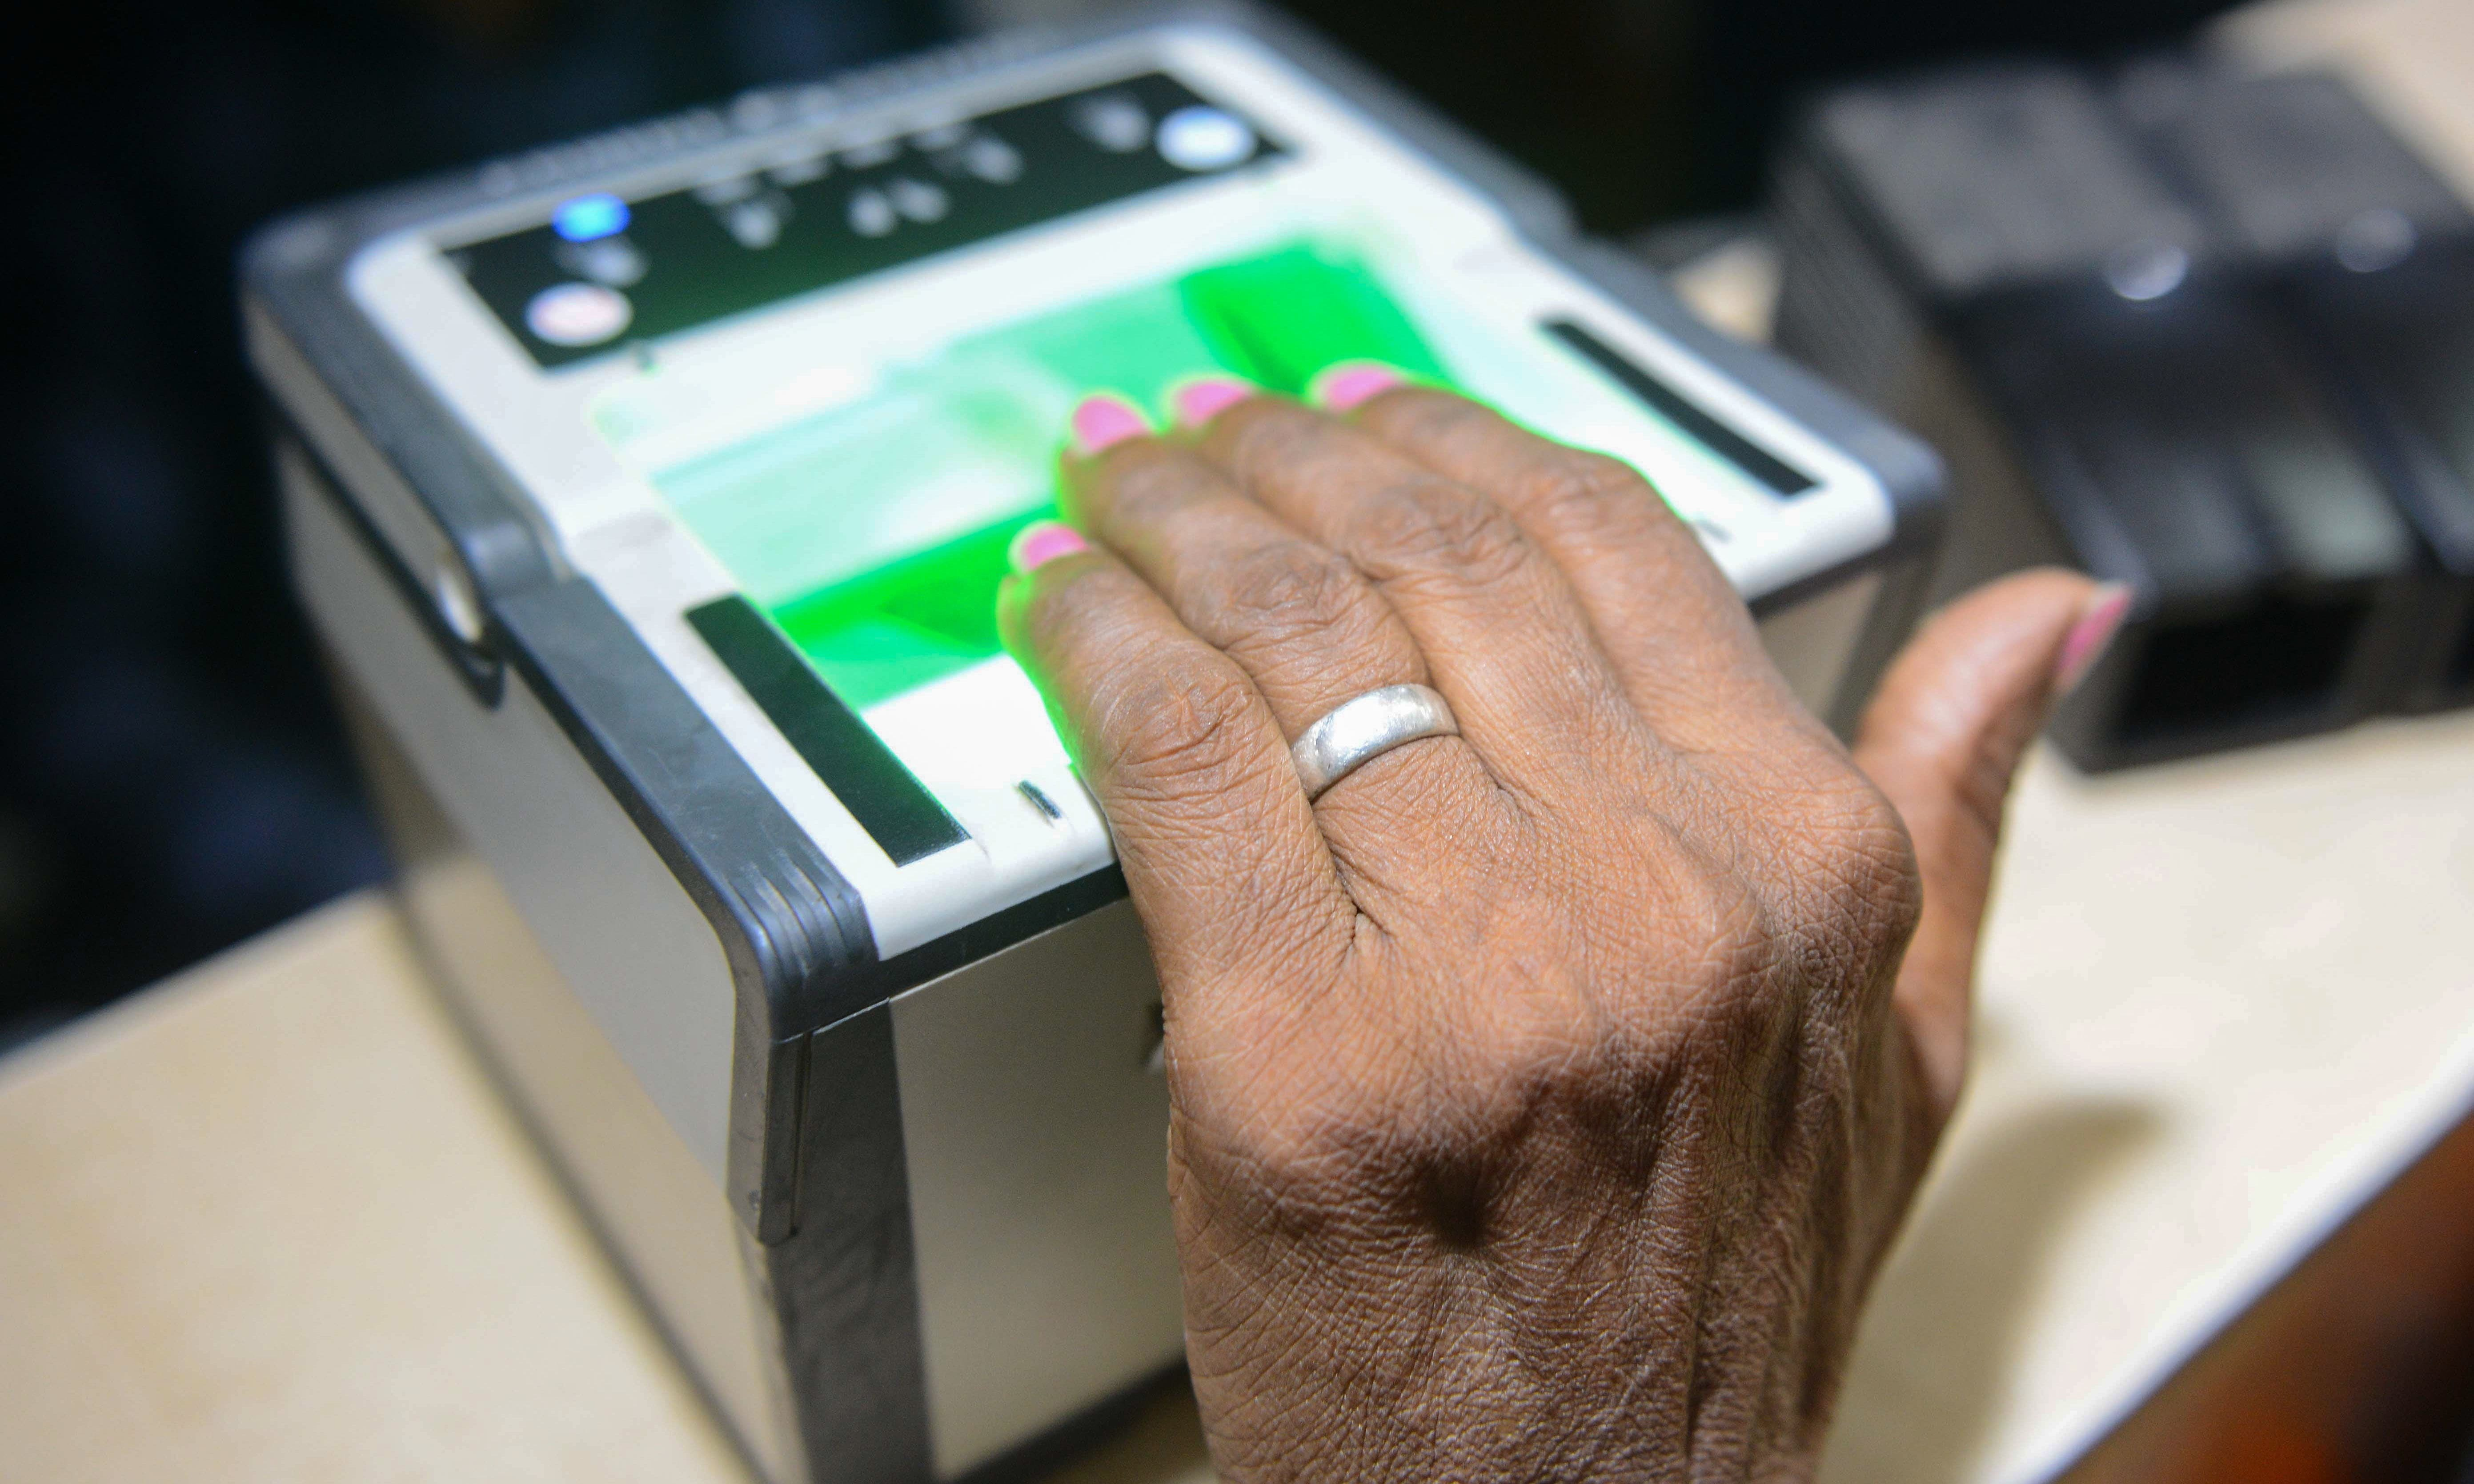 The Khyber Pakhtunkhwa government has failed to provide senior citizen cards to around 2.8 million elderly people of the province as nearly half of them suffer from physical disabilities, according to sources. — AFP/File